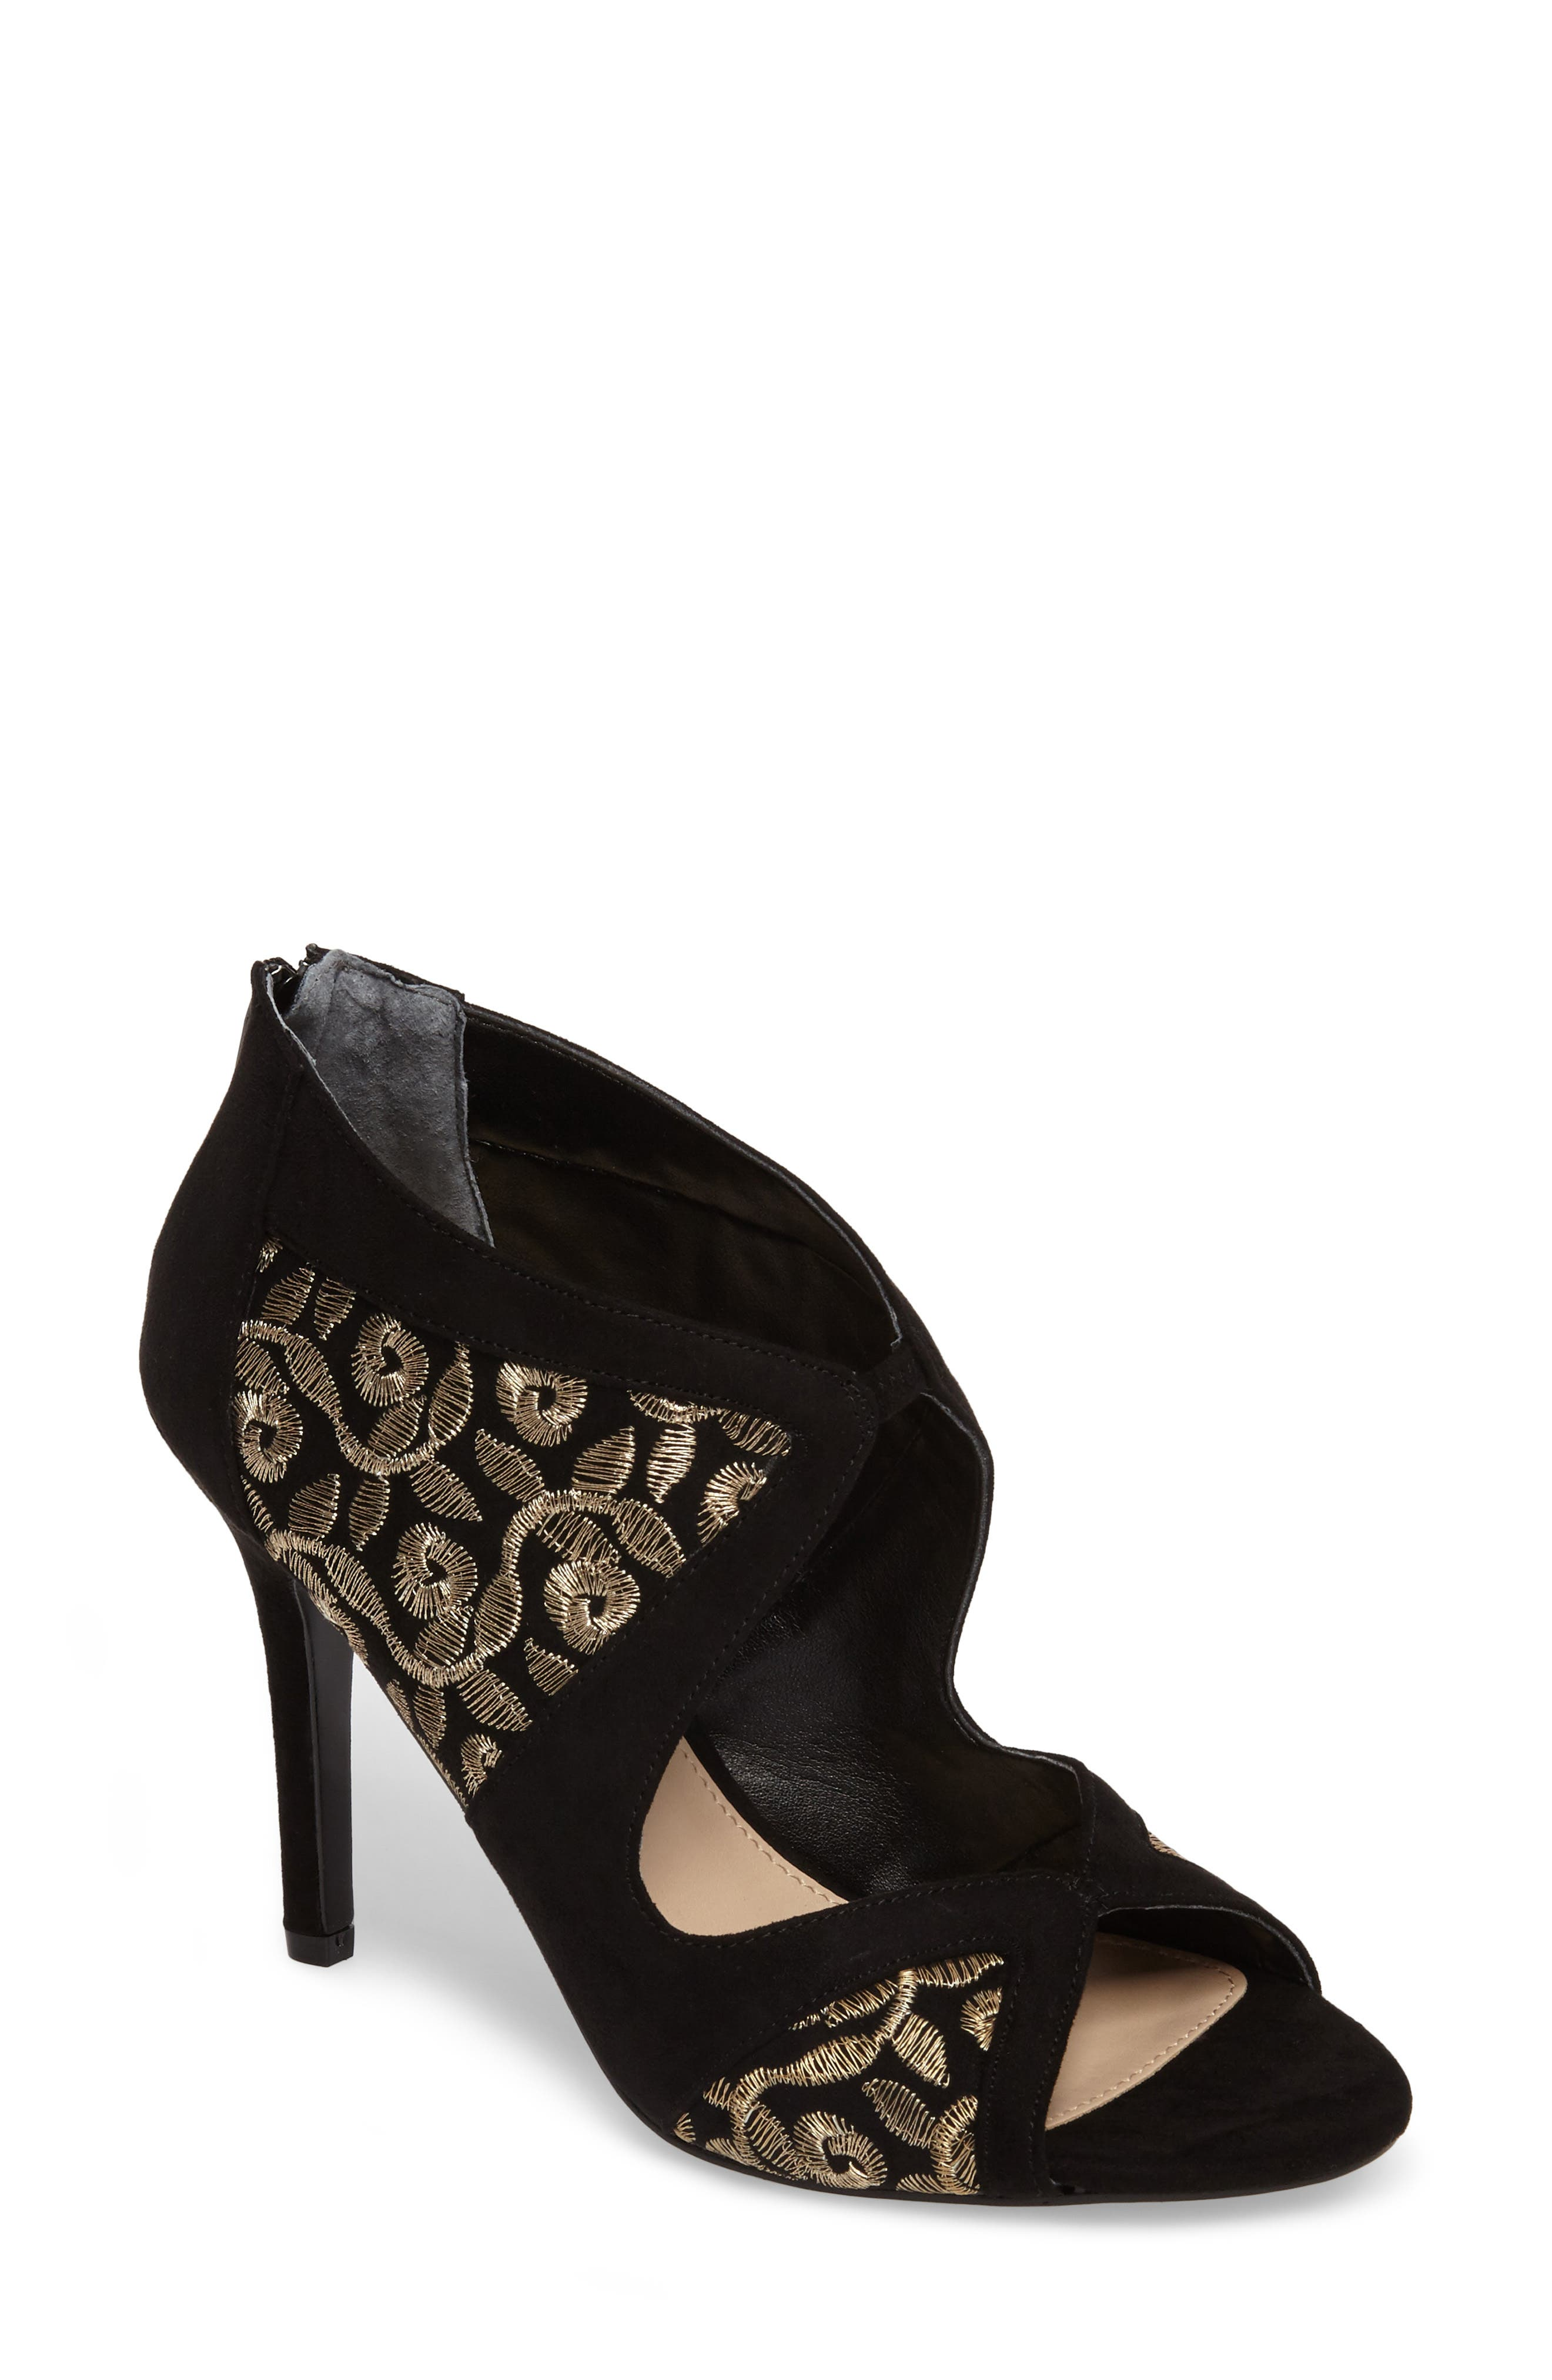 Cordella Open Toe Pump,                         Main,                         color, Black/ Gold Embroidery Fabric